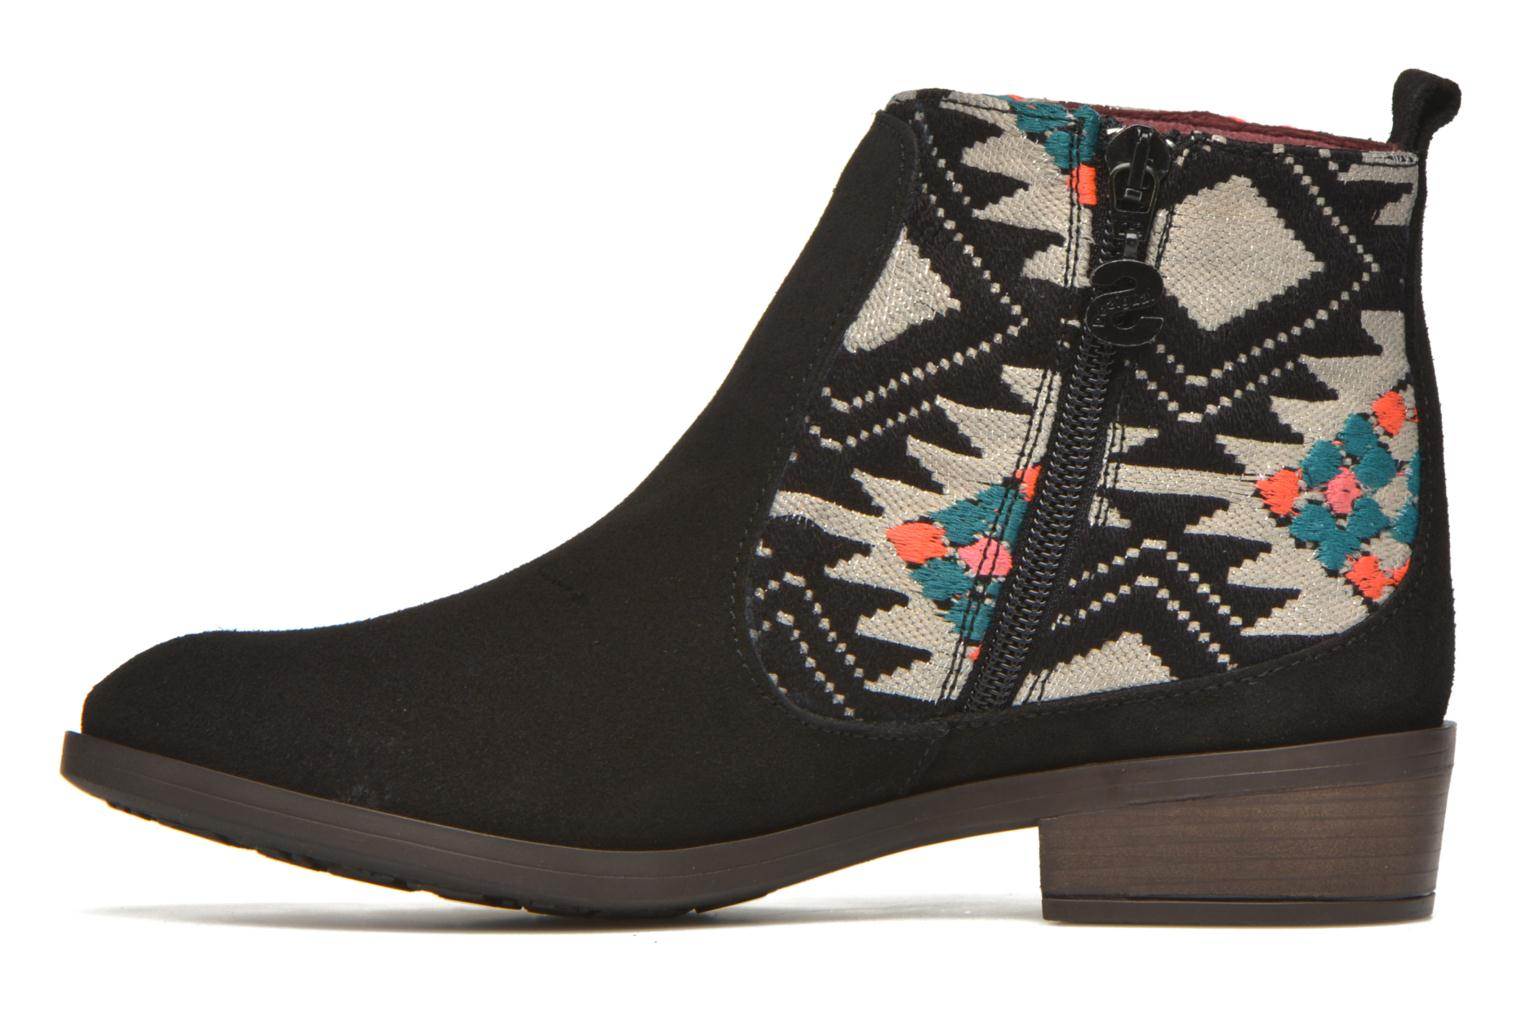 Bottines et boots Desigual Indian boho Noir vue face